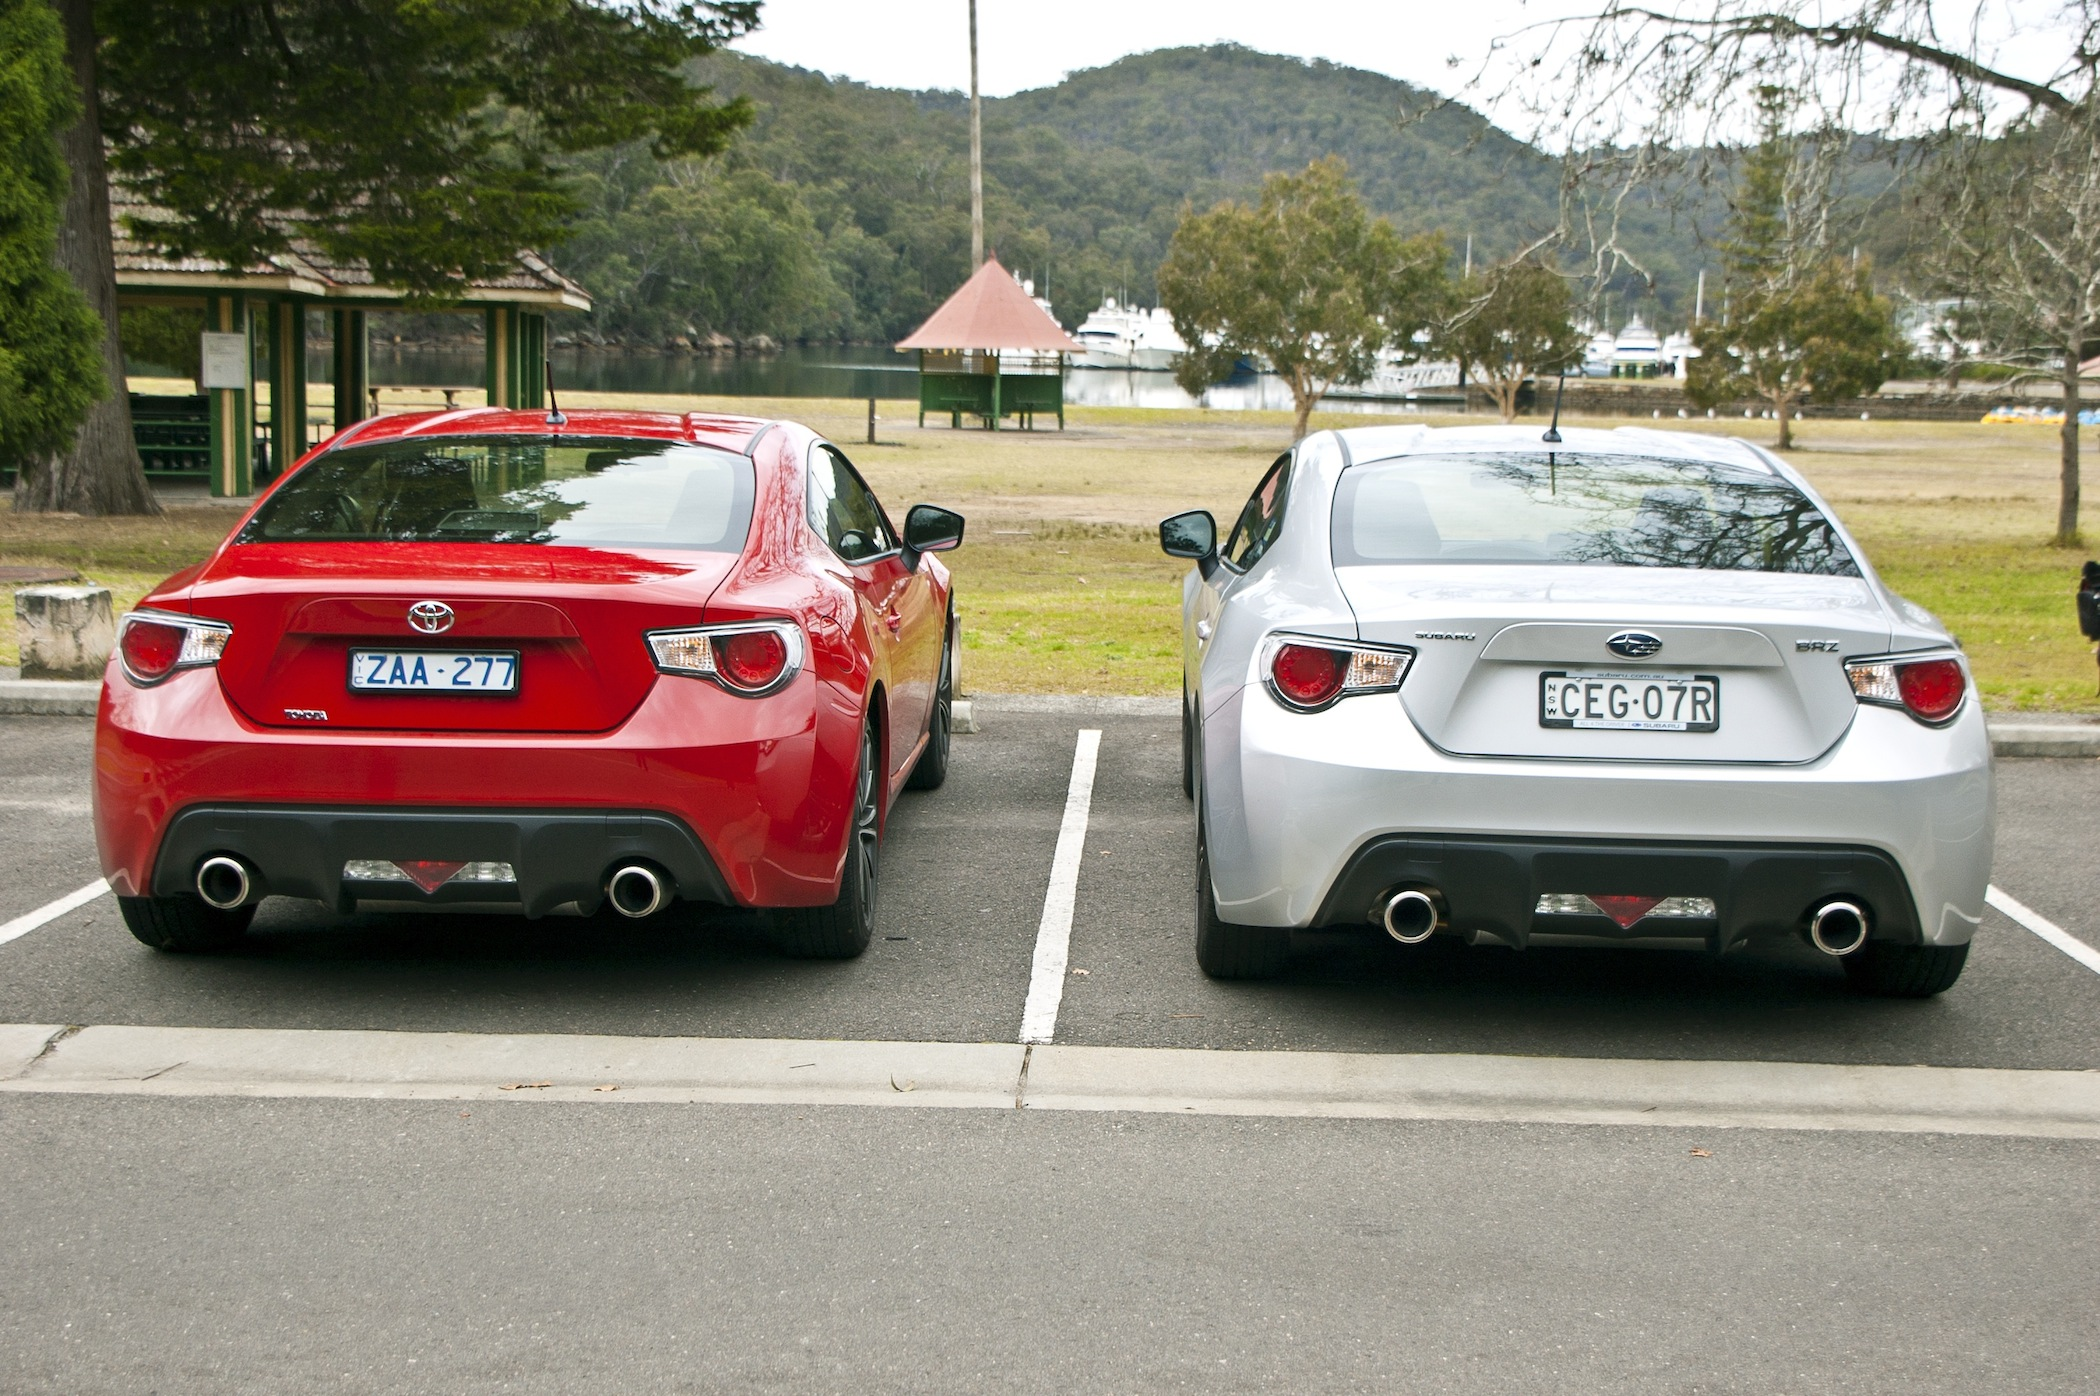 Subaru Brz Vs Toyota 86 >> Toyota 86 Vs Subaru Brz Comparison Review Caradvice